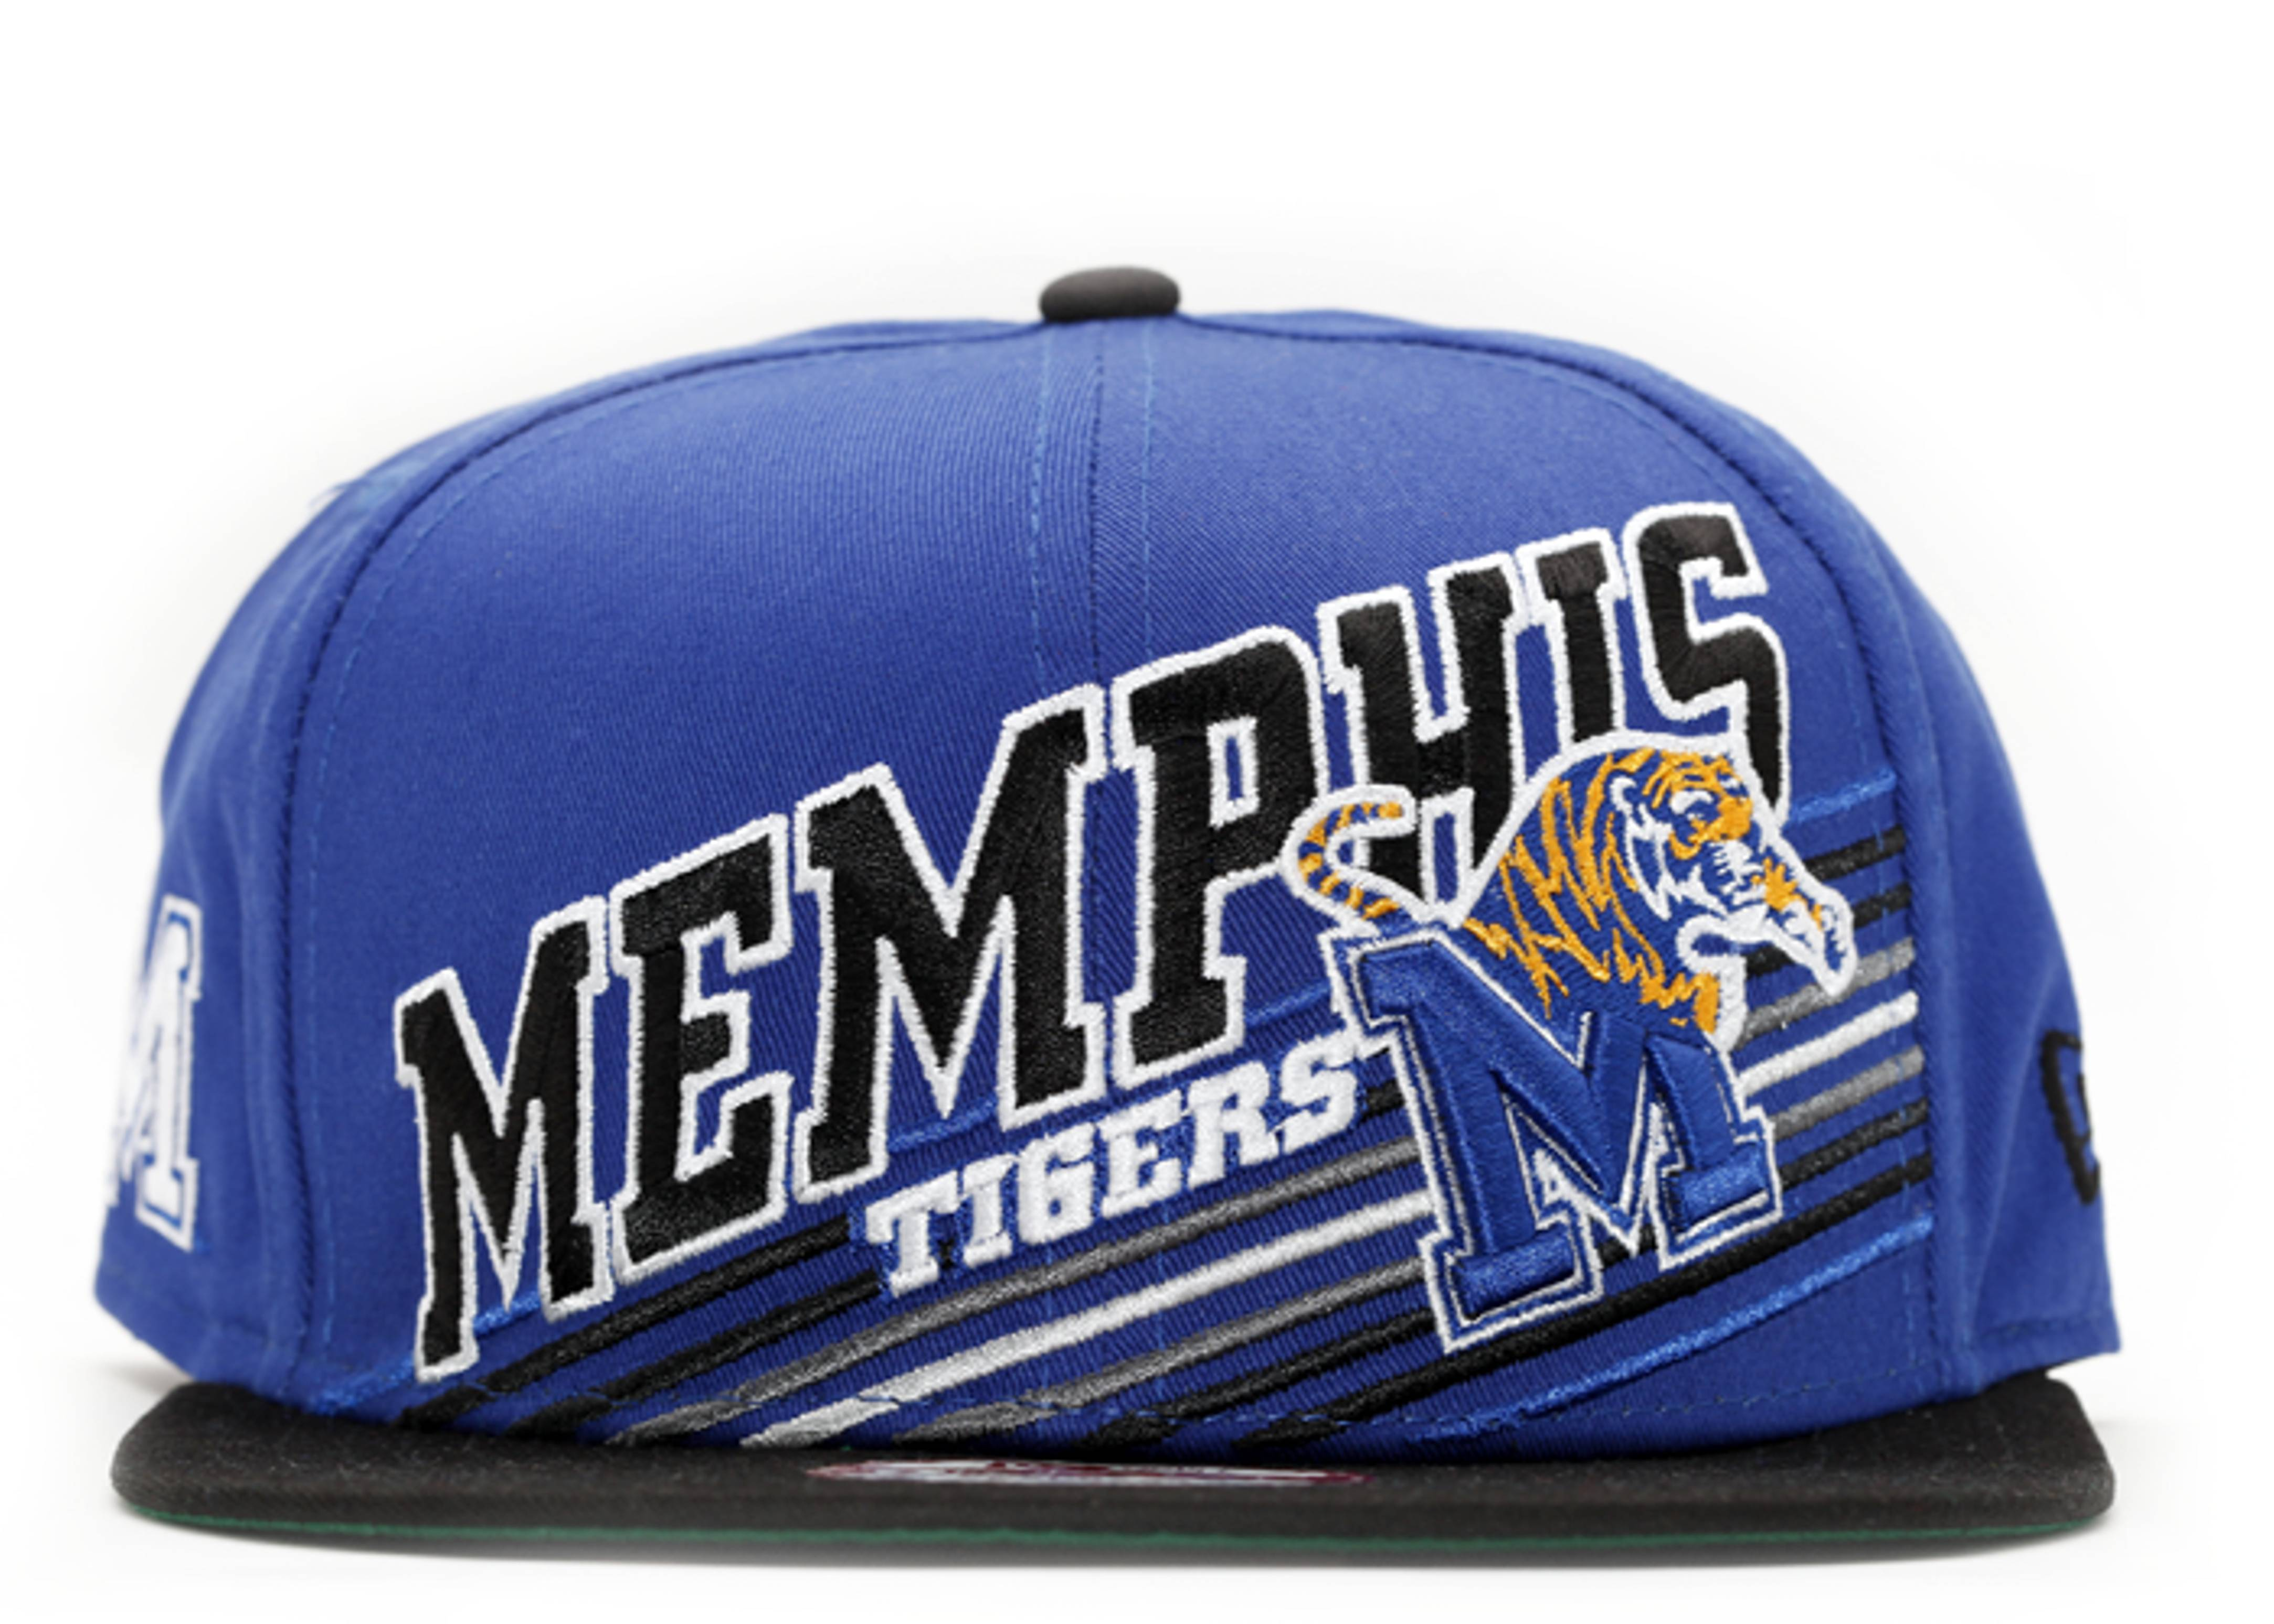 memphis tigers snap-back